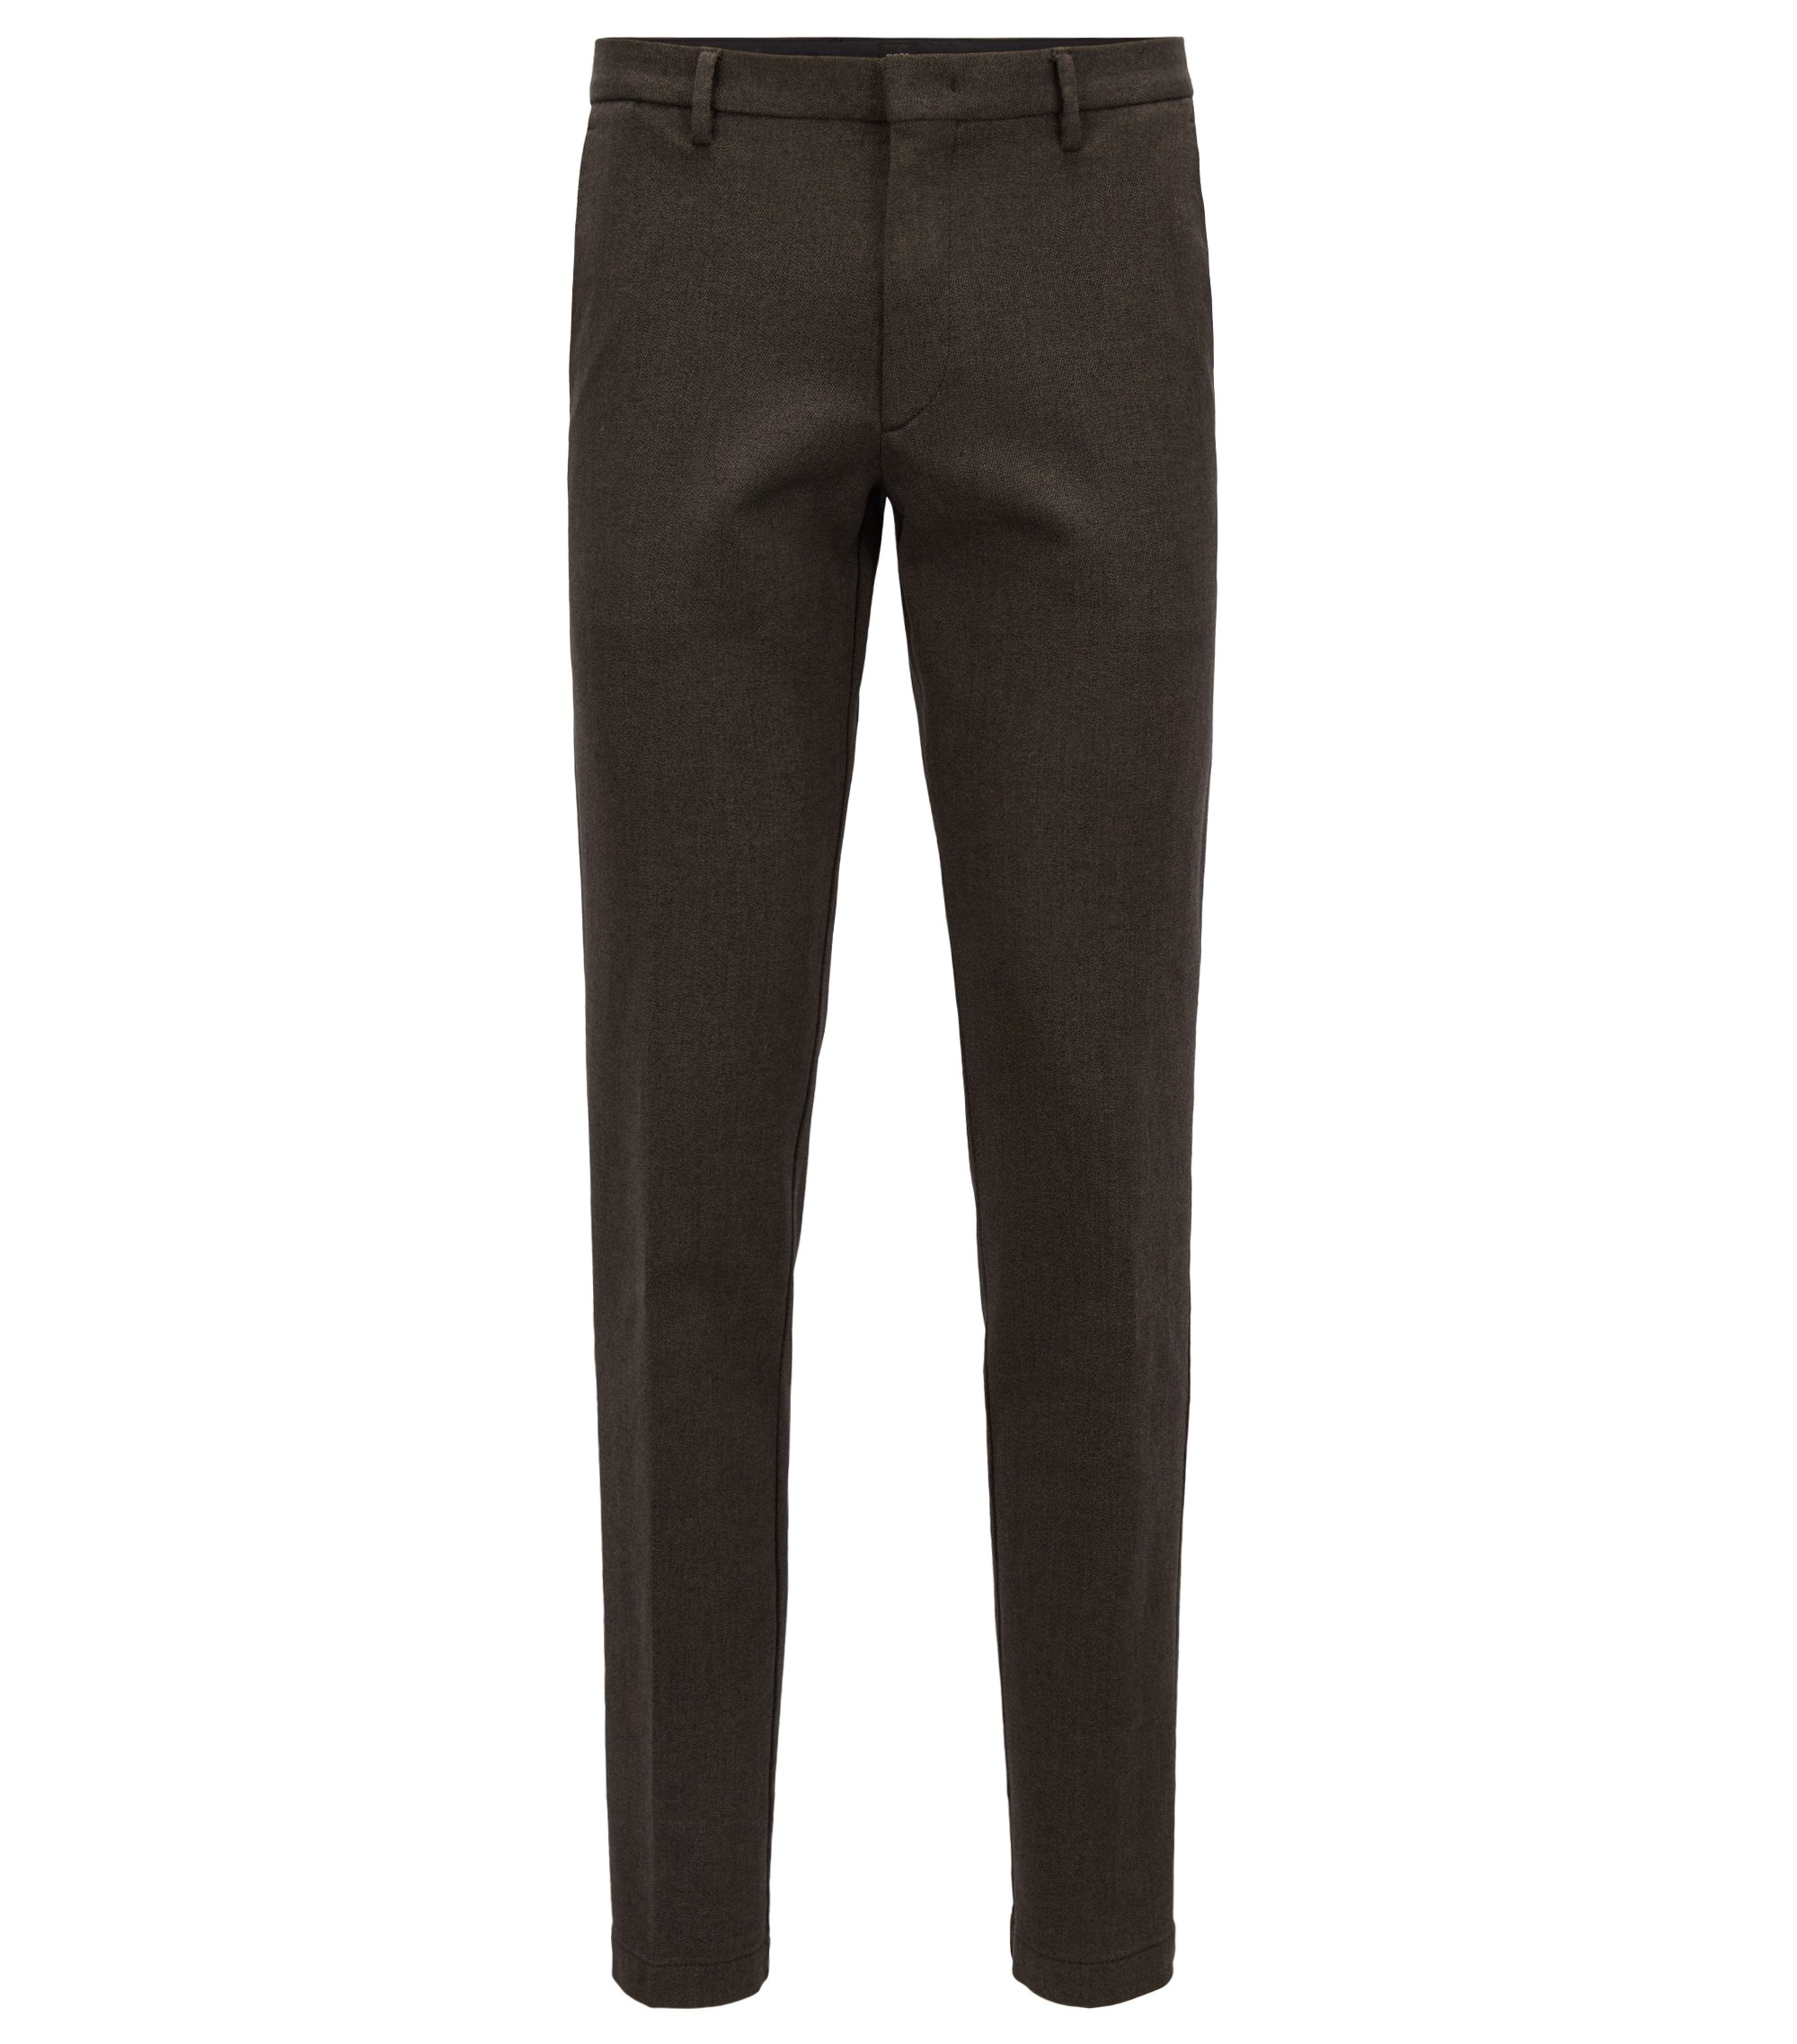 Chino Slim Fit en twill de coton mouliné stretch, Marron foncé